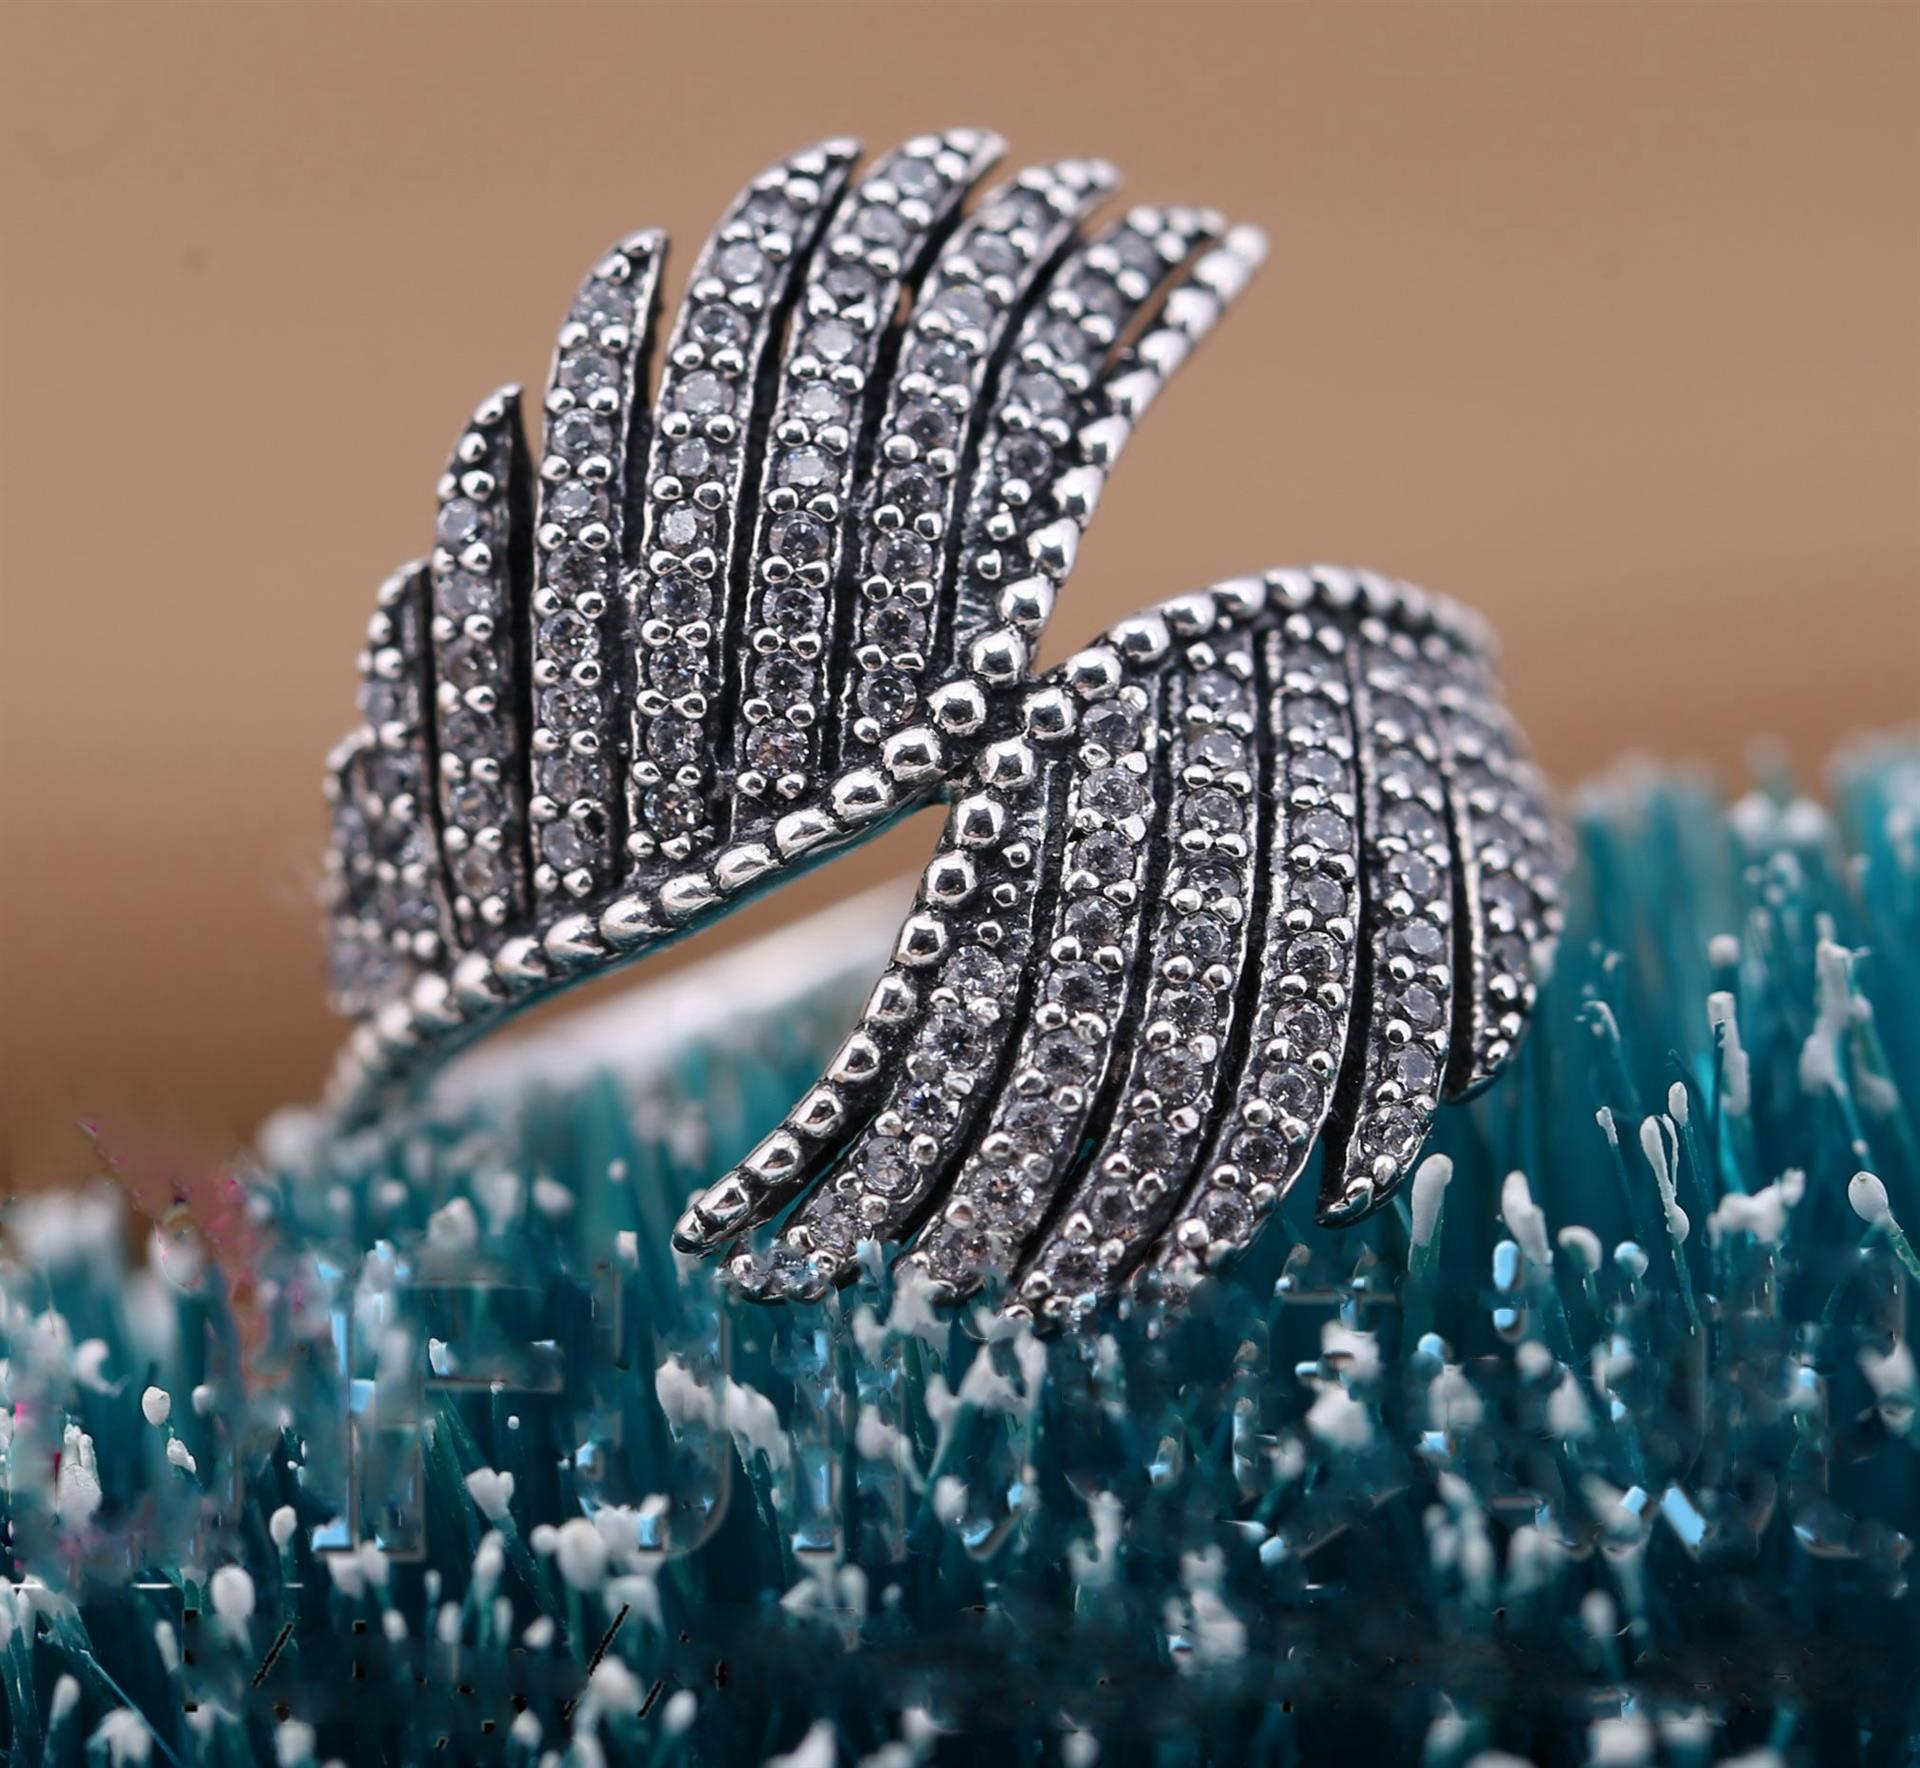 Vintage Feather rings 100% 925 sterling silver & cubic zirconia 20116 Newest European DIY fashion rings fits for pandora charms jewelry